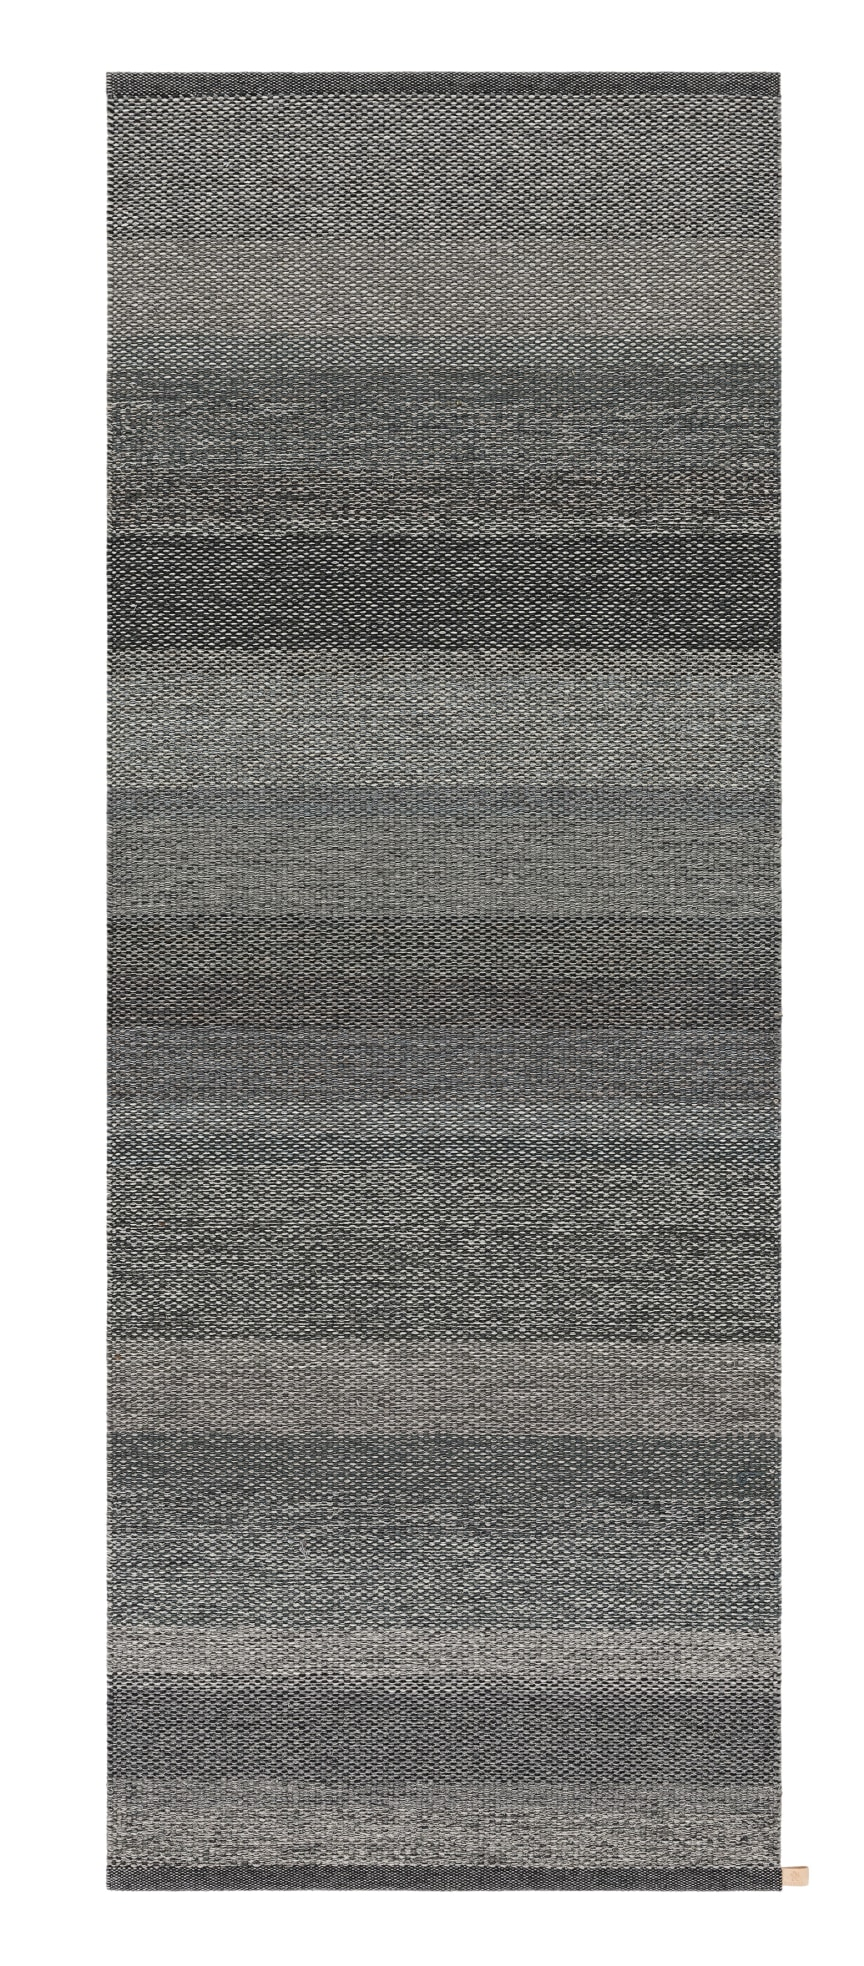 Harvest_BlackGrey_RUG